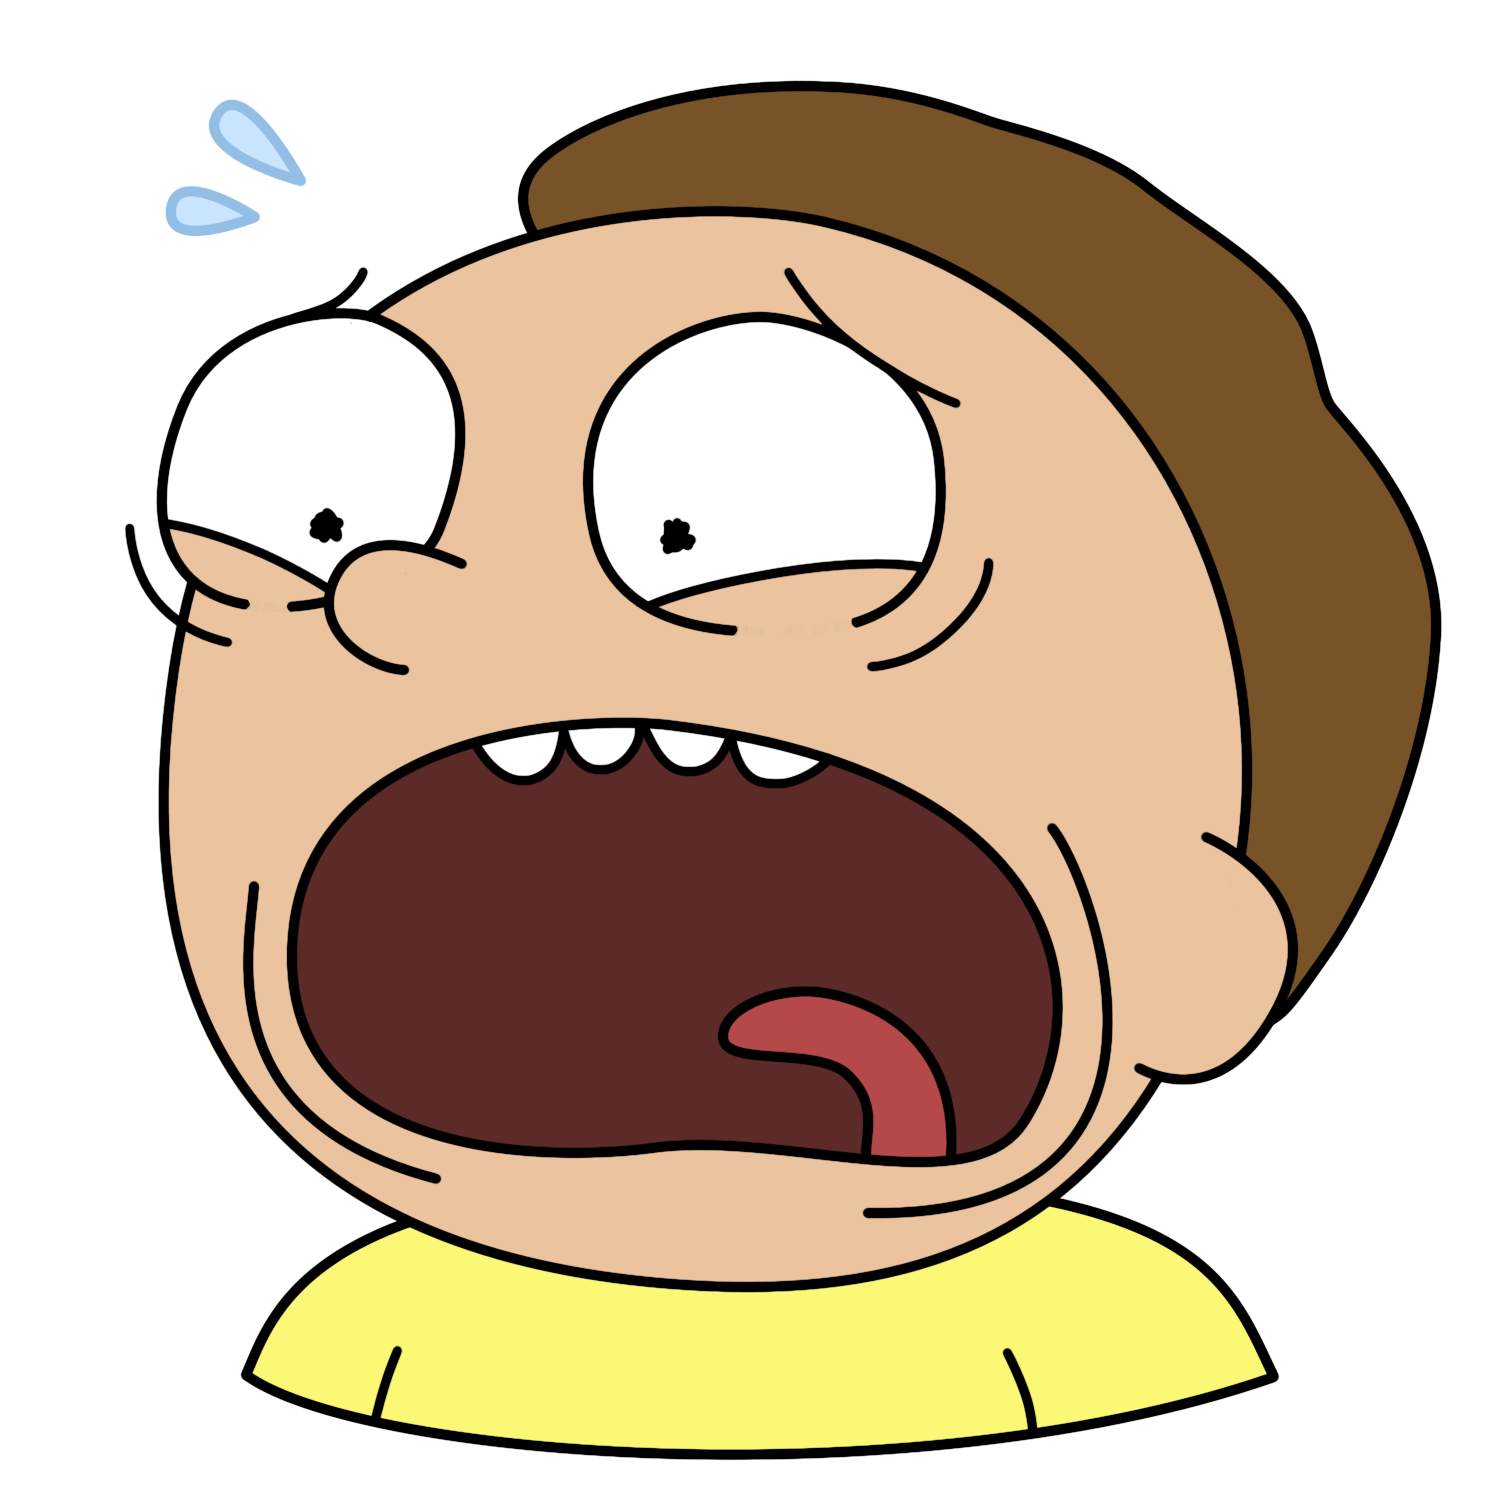 rick and morty rick face png